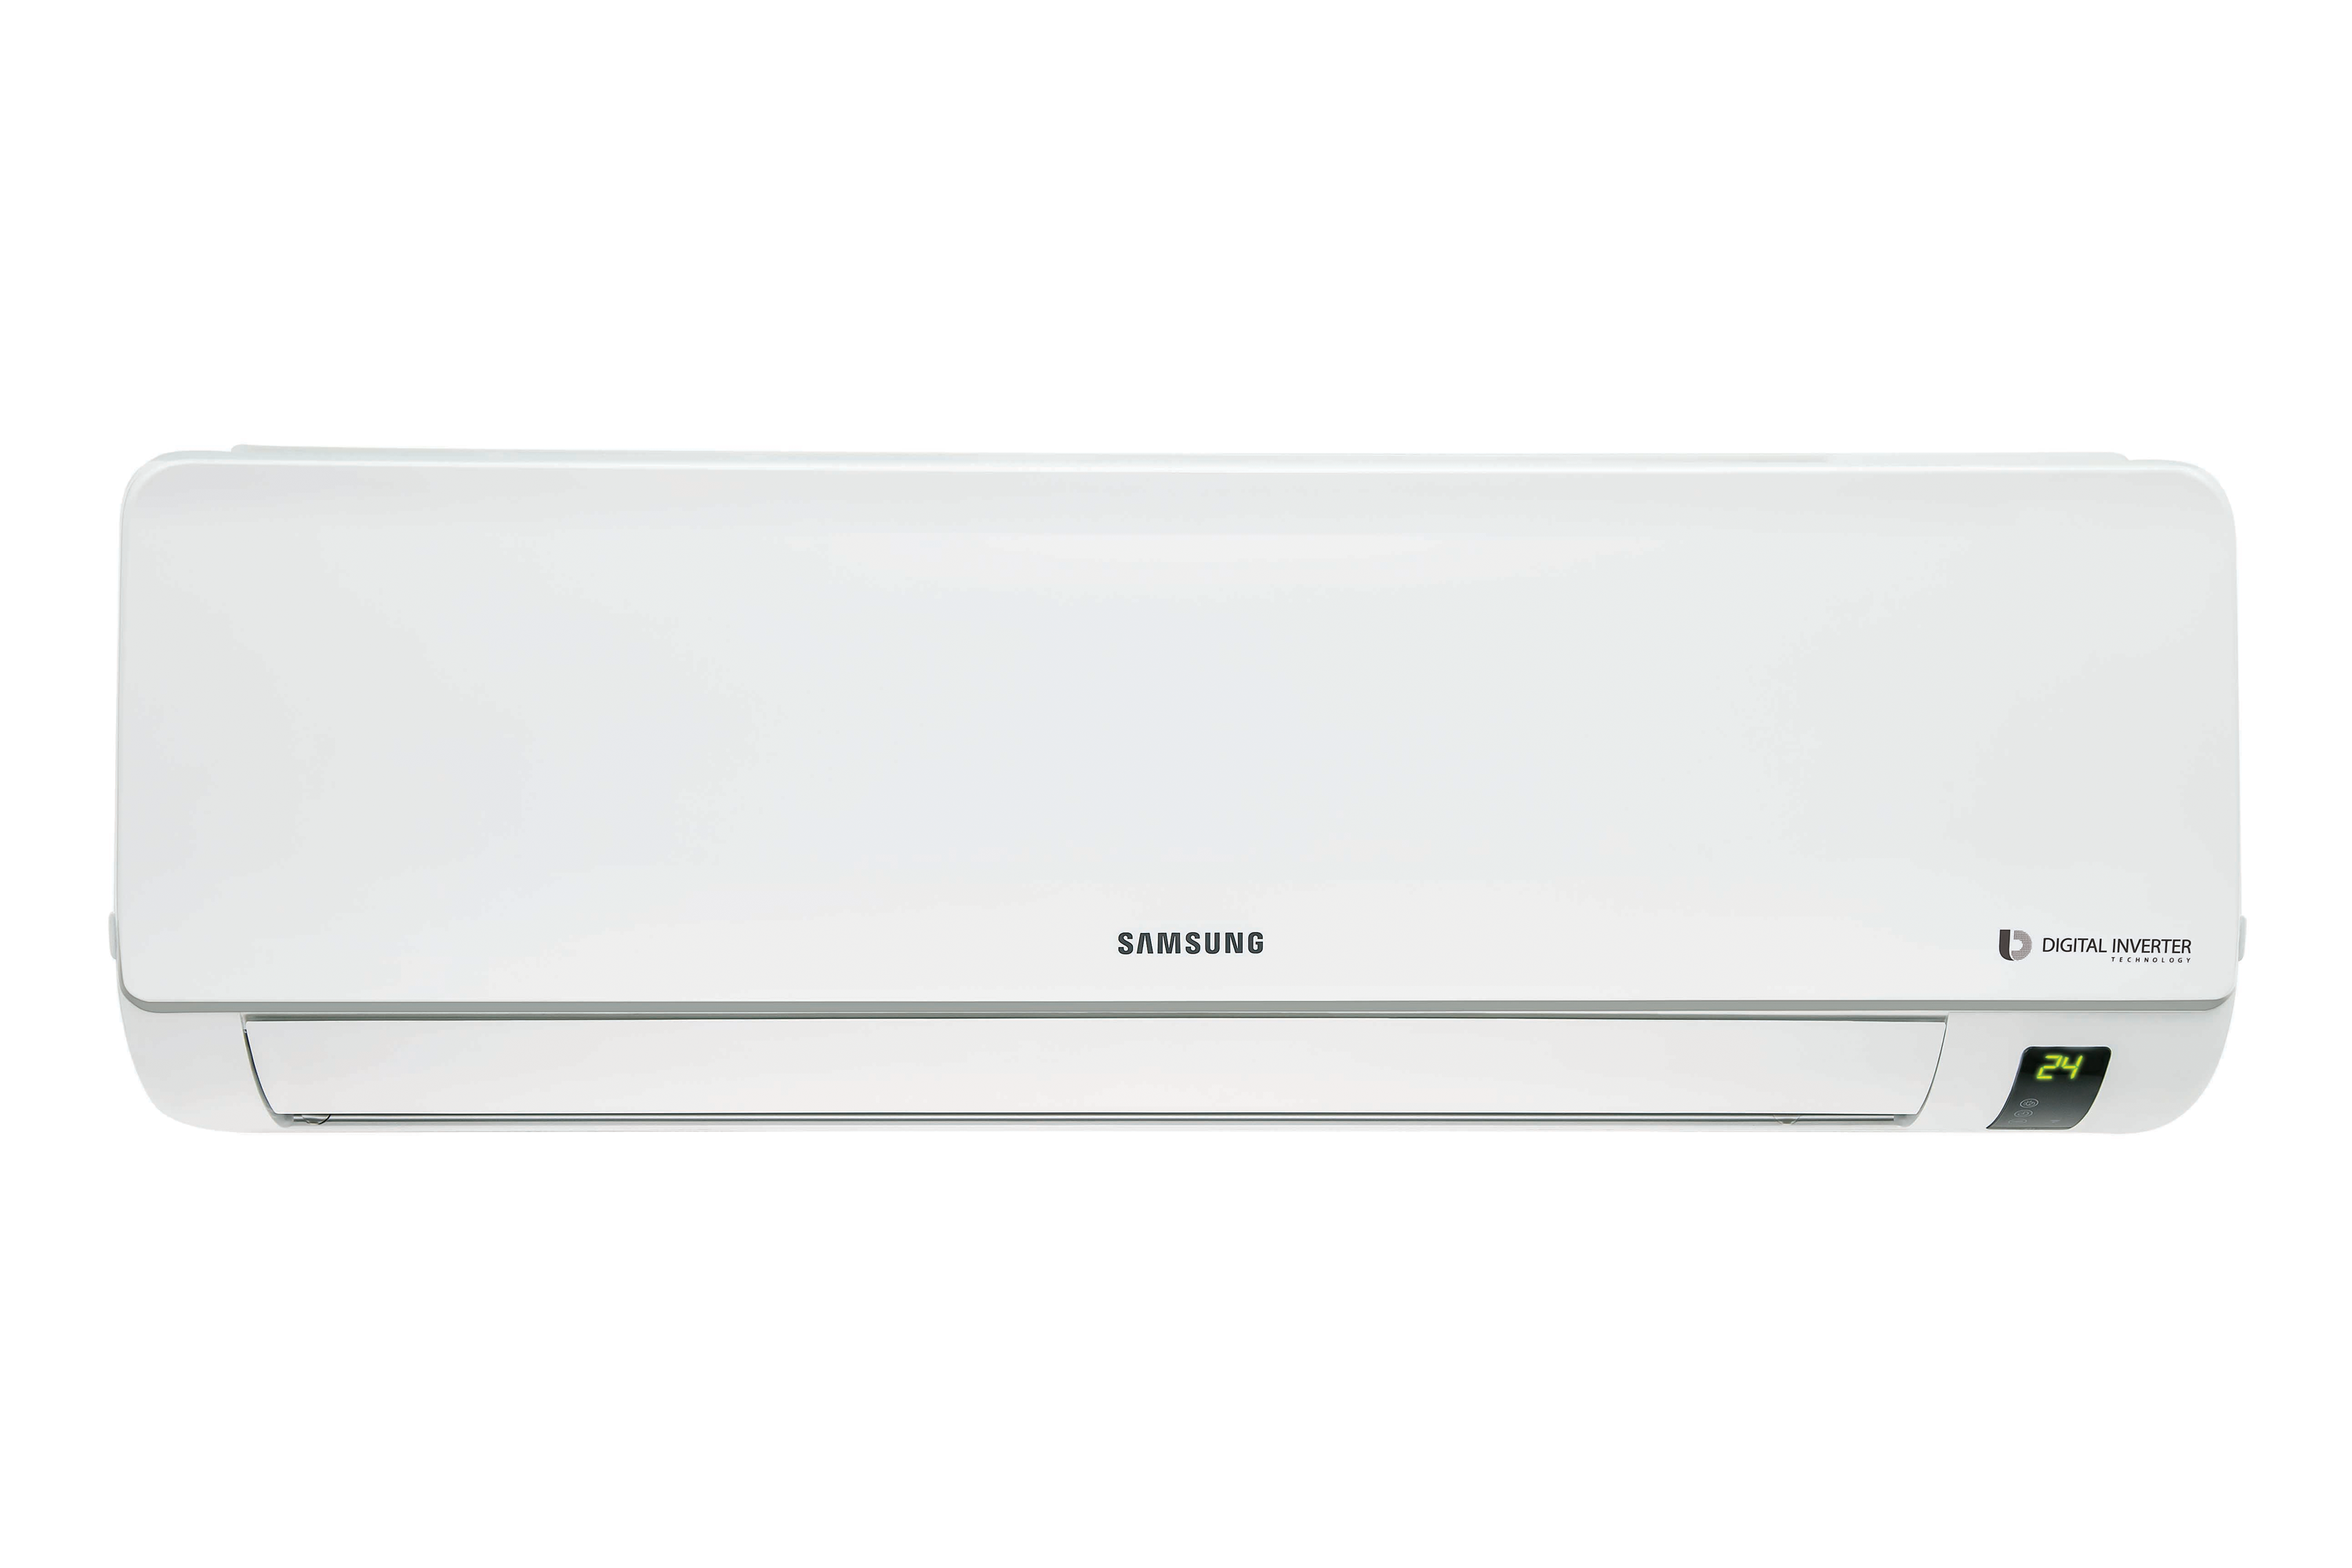 New Boracay Split AC with Digital Inverter Technology, 1.0 TR